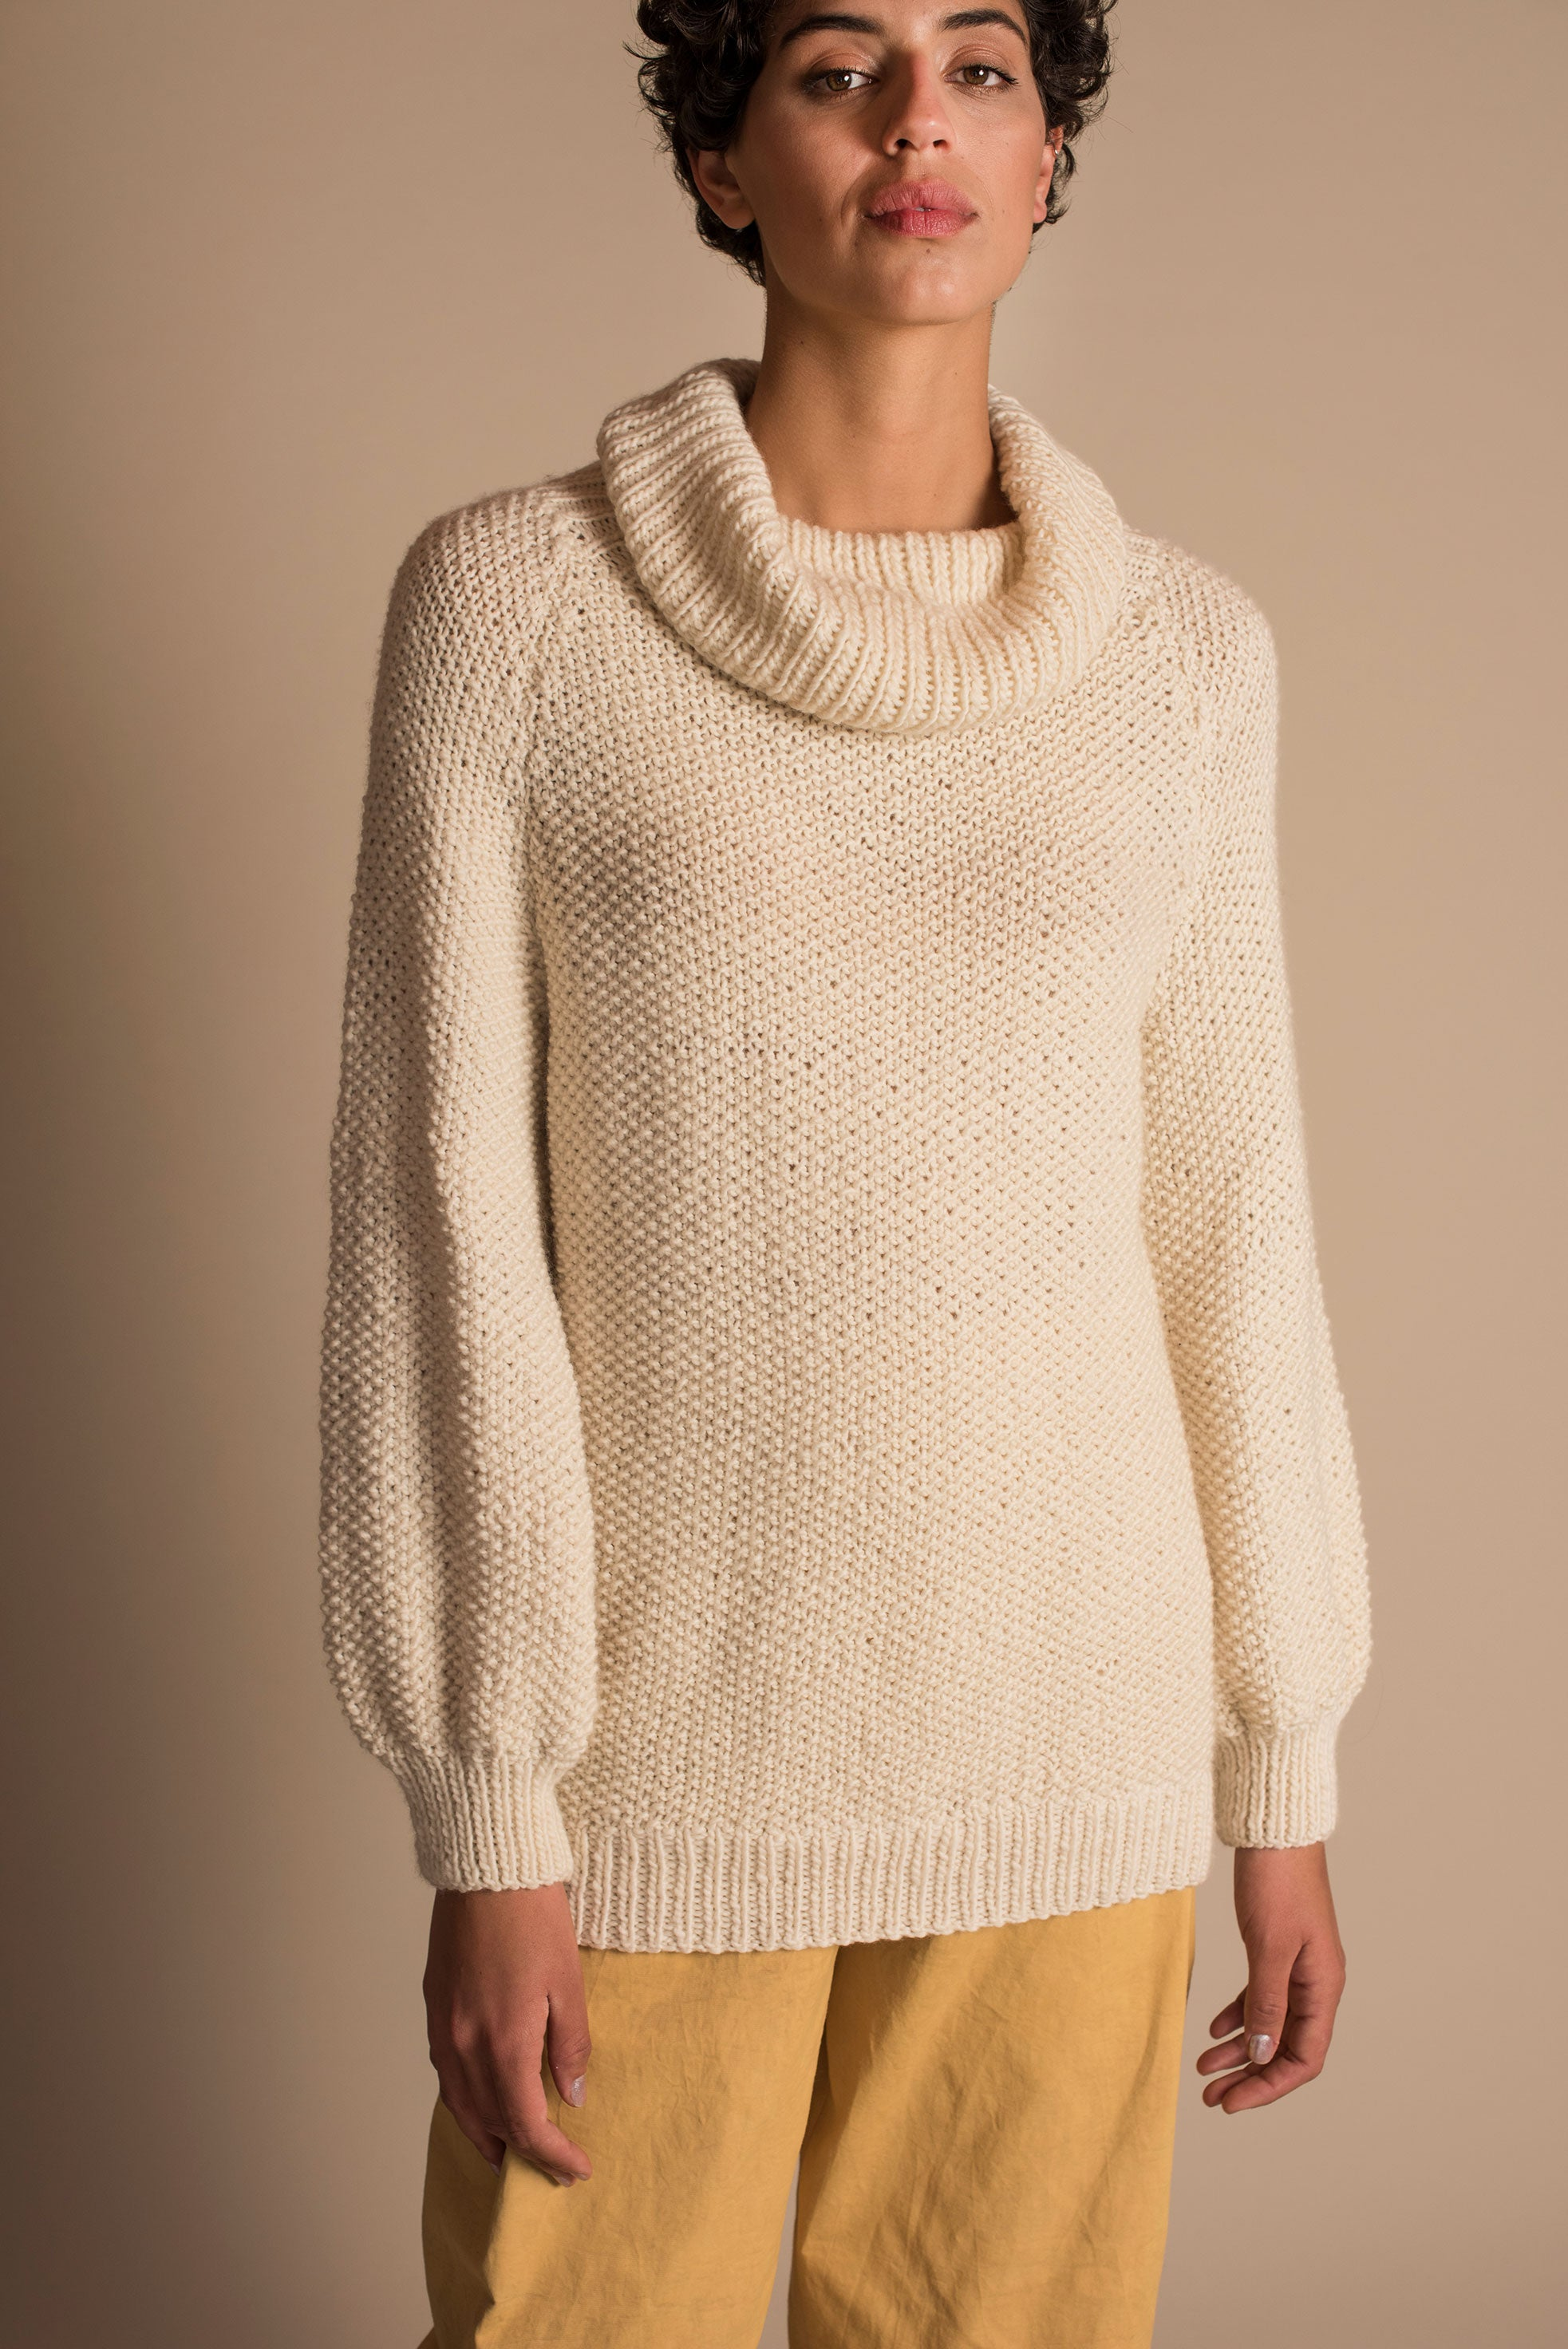 MARTE Long Sweater in Ivory